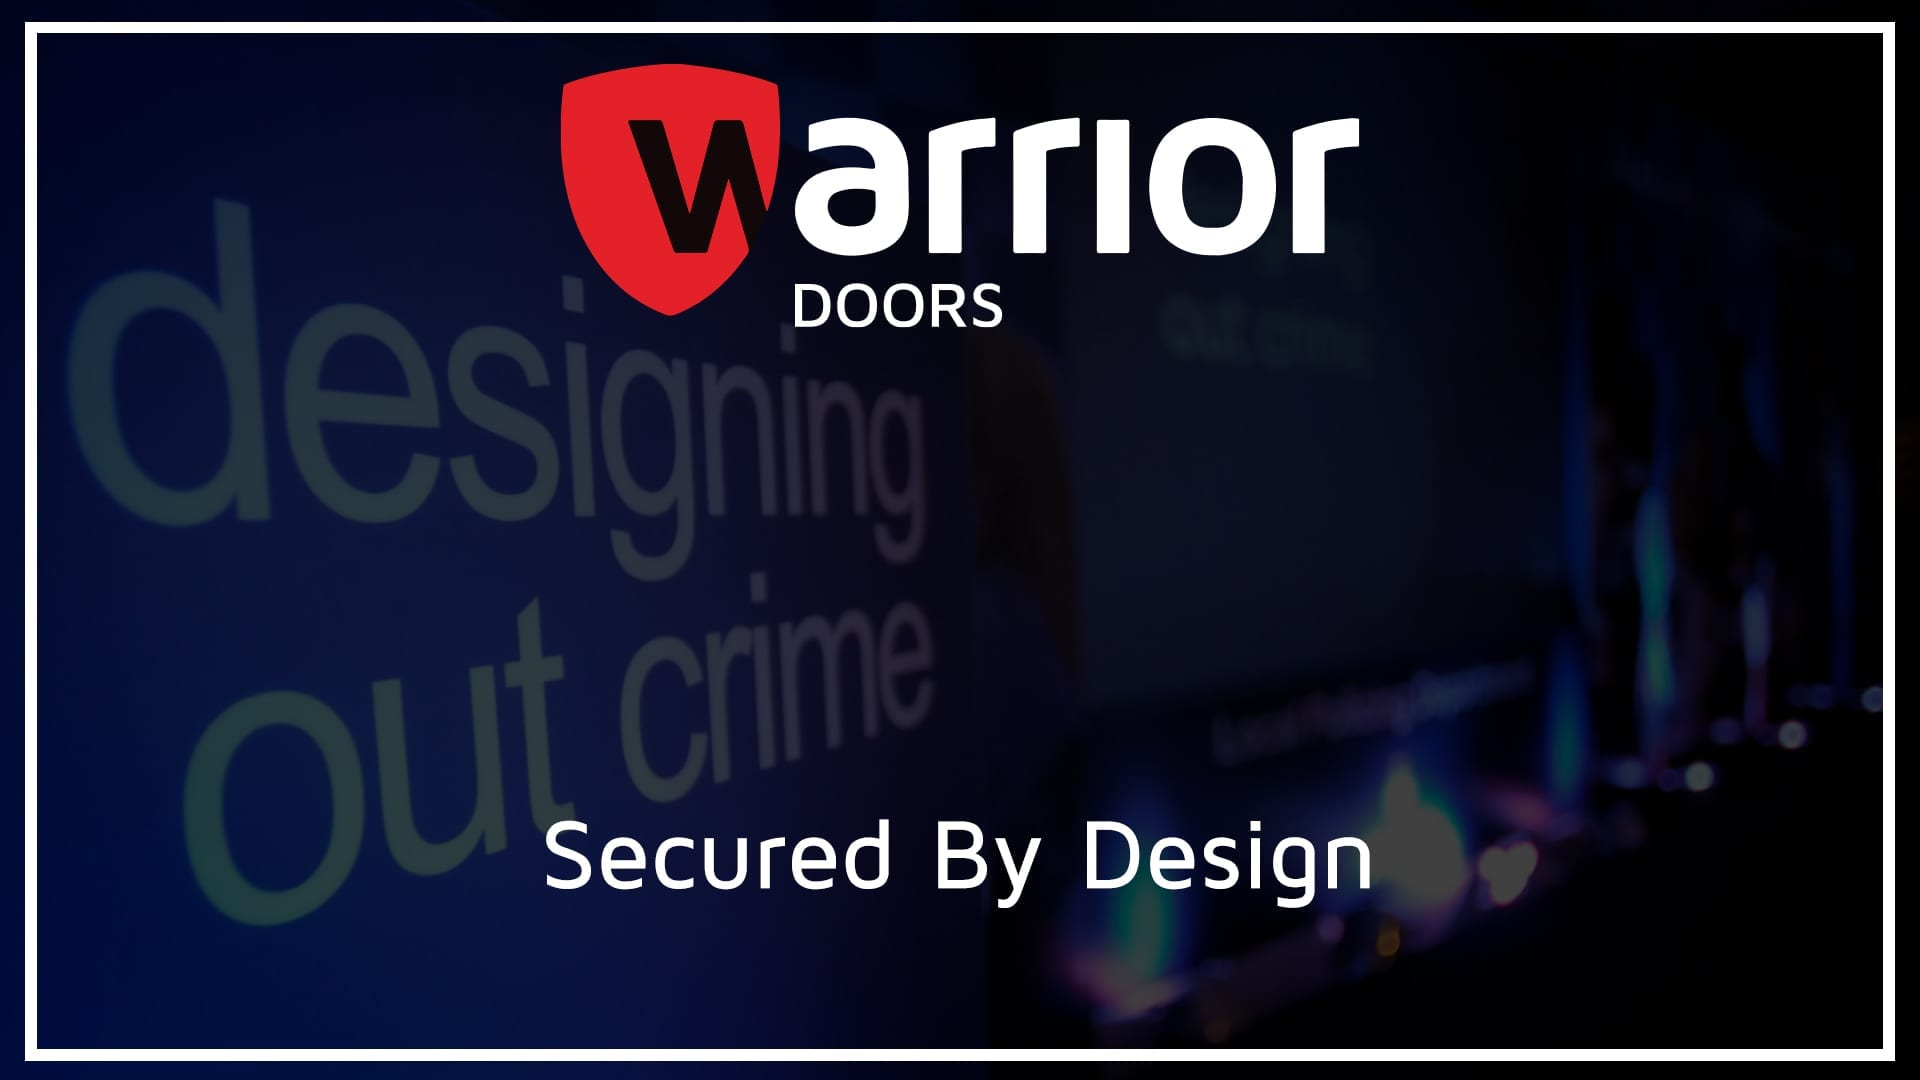 """Secured By Design Event with sigh reading """"designing out crime"""" with Warrior Doors Logo and text reading """"Secured By Design"""""""